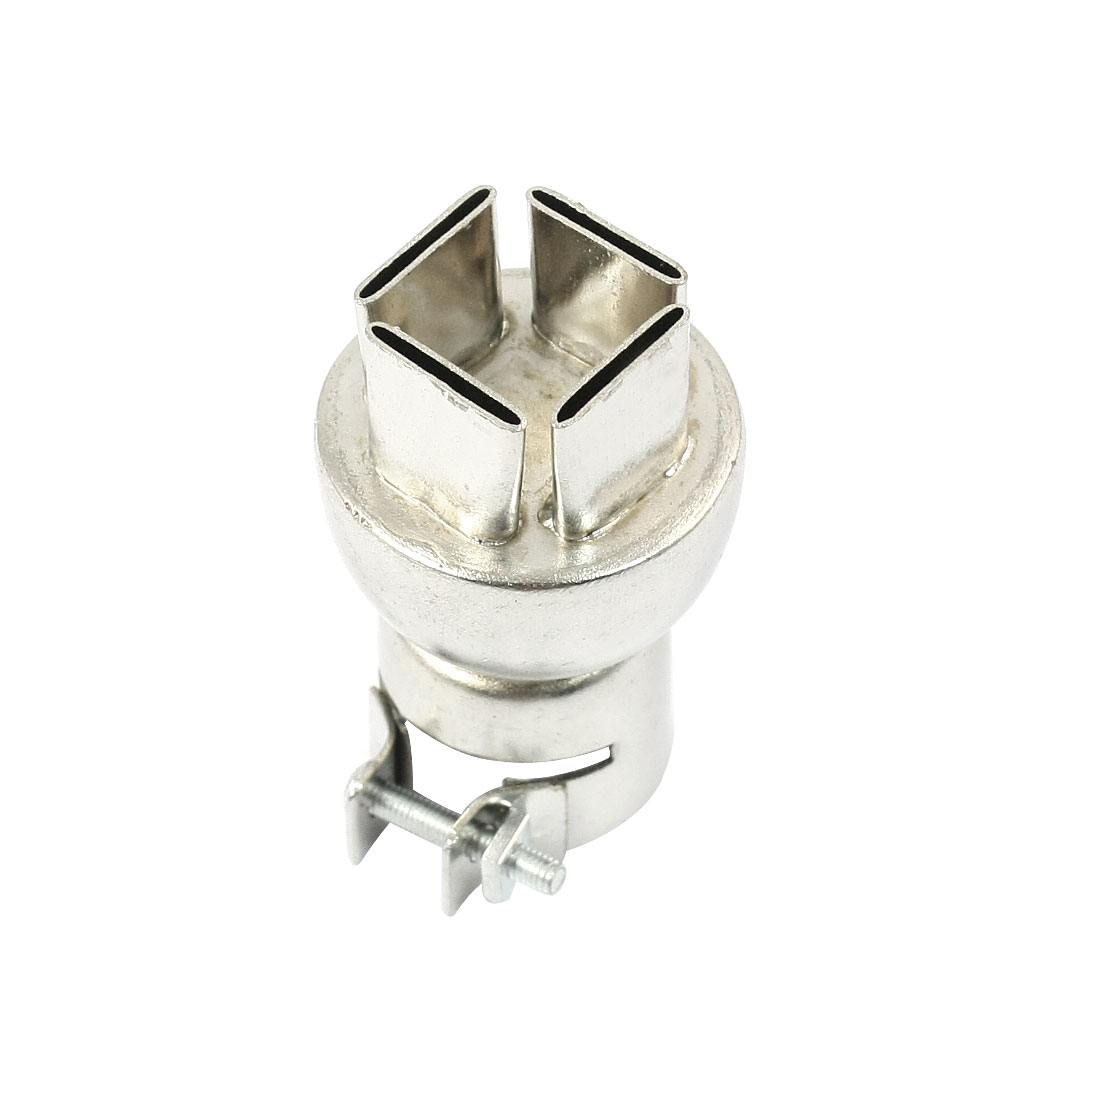 A1126 Stainless Steel 14mm x 14mm QFP Nozzle for 850 Hot Air Gun